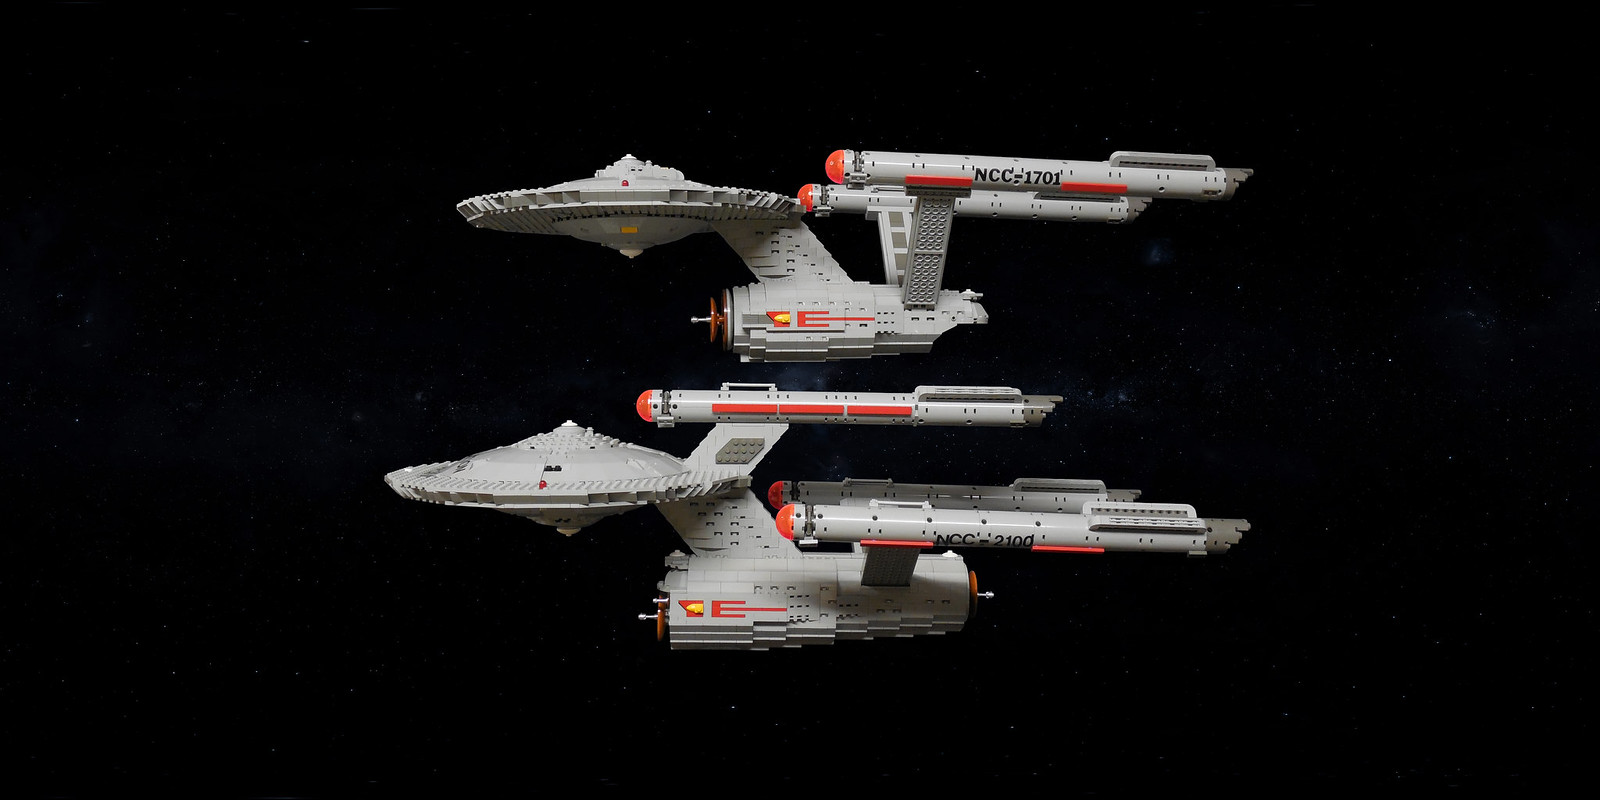 Enterprise escort duty